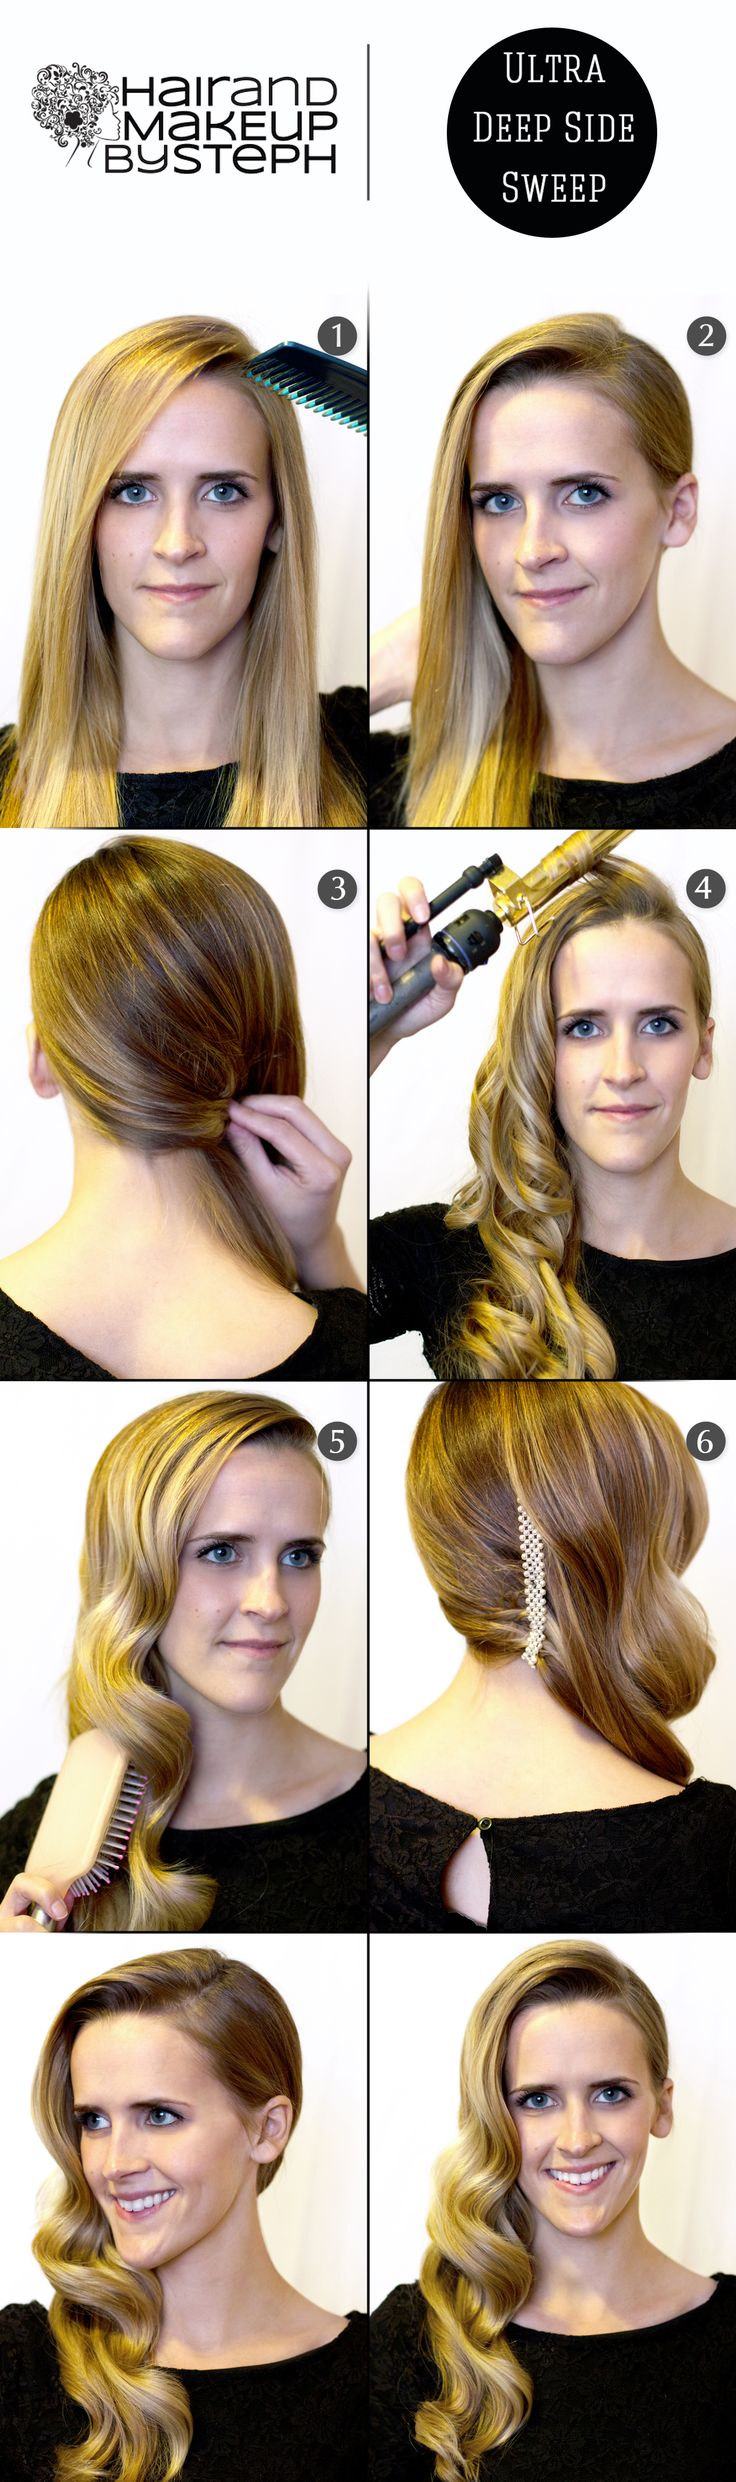 Top Pinner @Stephanie Brinkerhoff Ultra Deep Side Sweep Step-by-Step for Prom, Weddings, or the Weekend! Steps via blog.hairandmakeupbysteph.com #Sephora